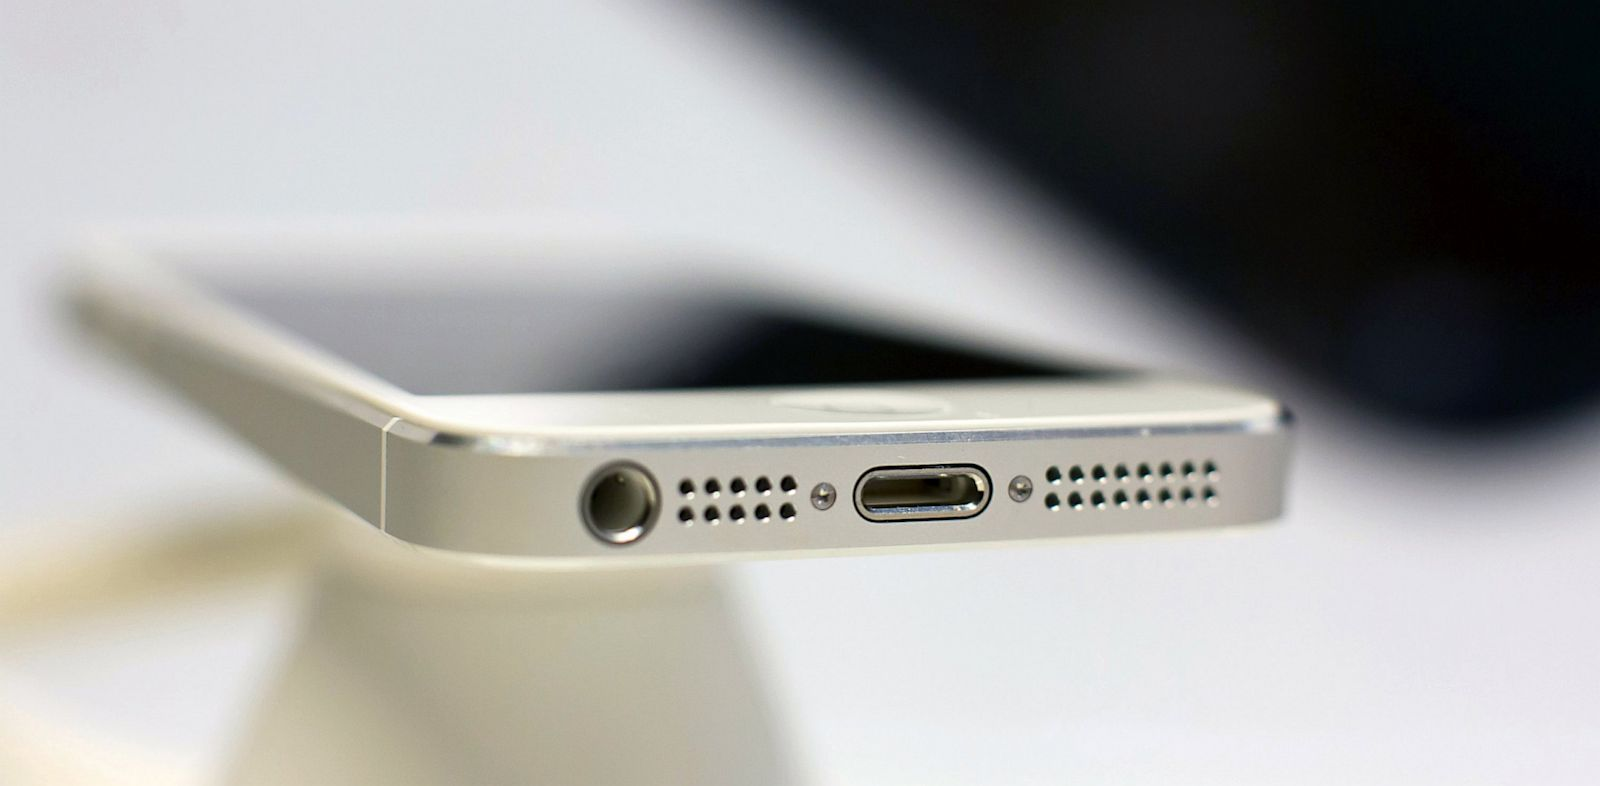 PHOTO: iPhone 5 lightning connector